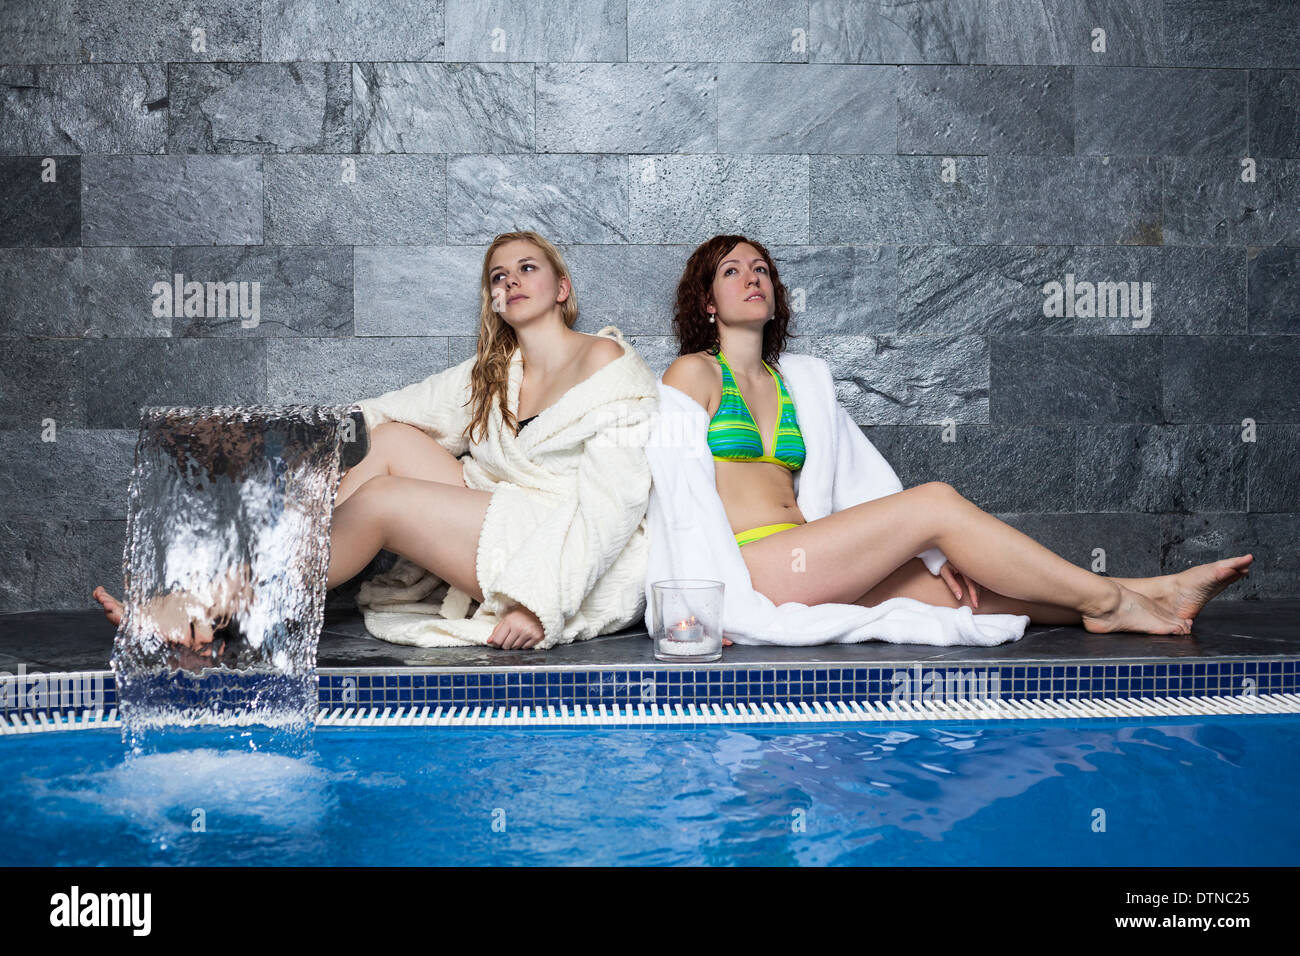 Women relaxing in wellness and spa swimming pool. Stock Photo